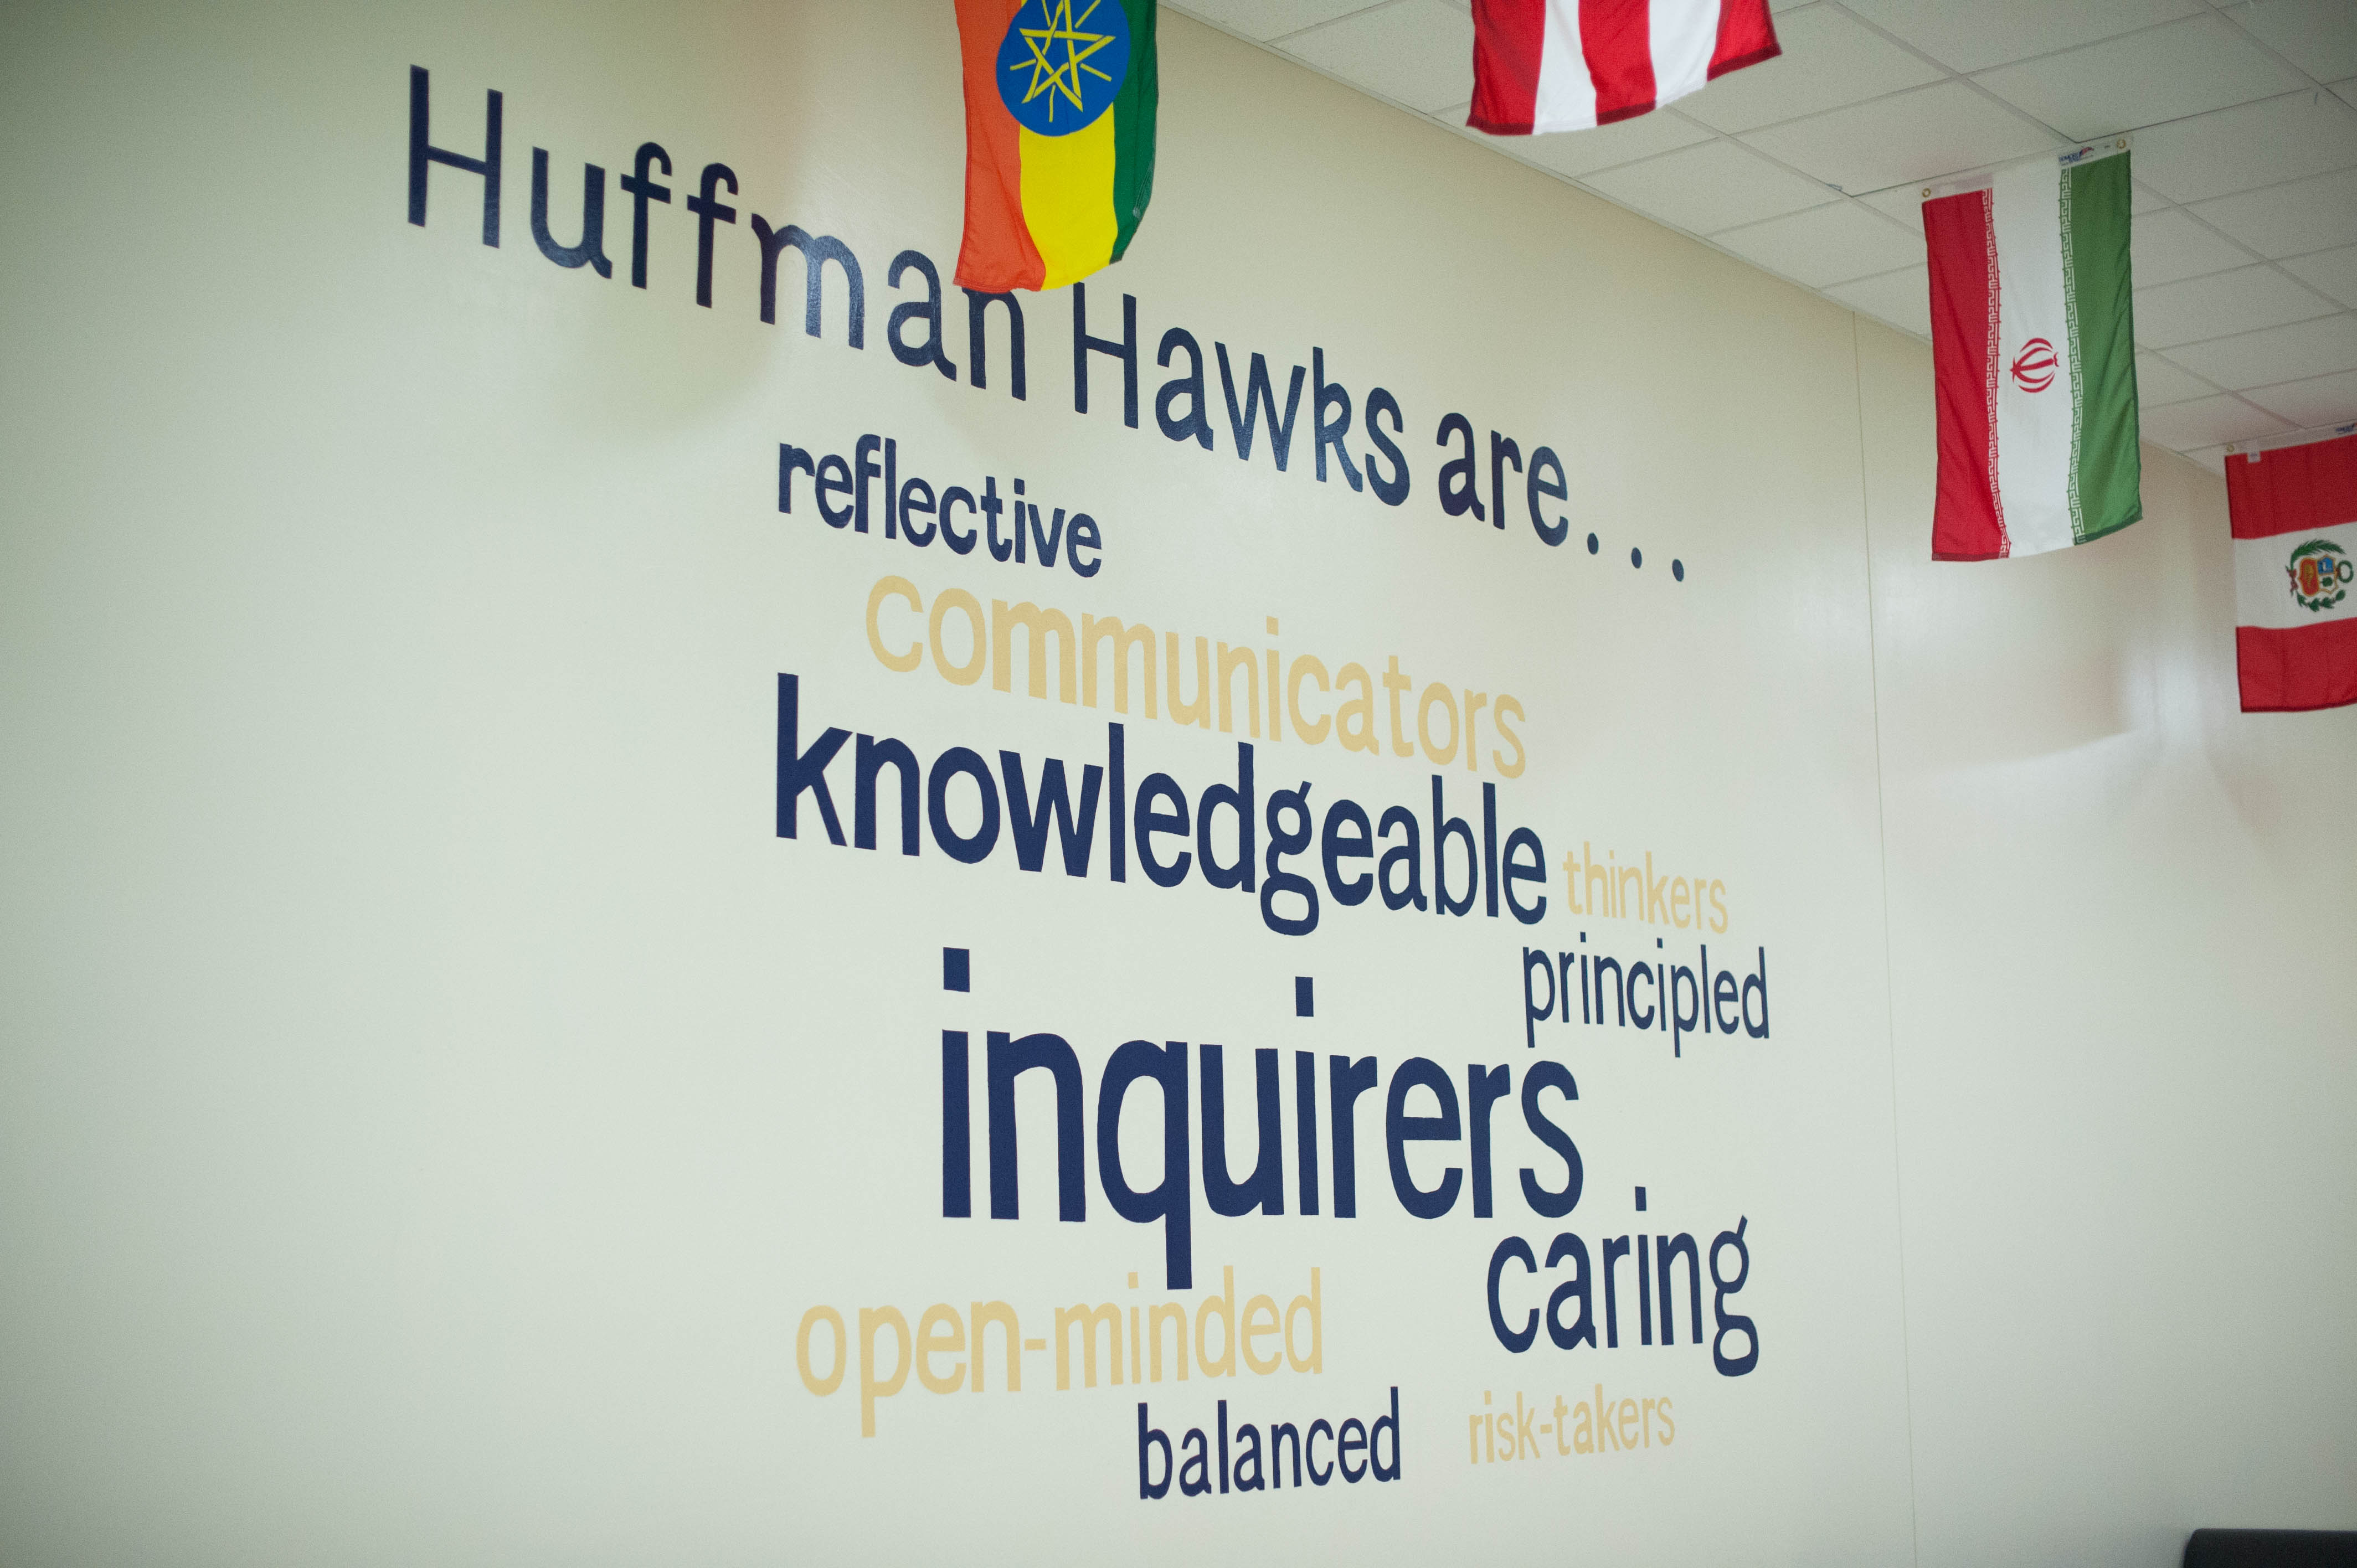 Huffman hawks reflective communicators knowledgeable thinkers principled inquirers open-minded caring balanced risk-takers